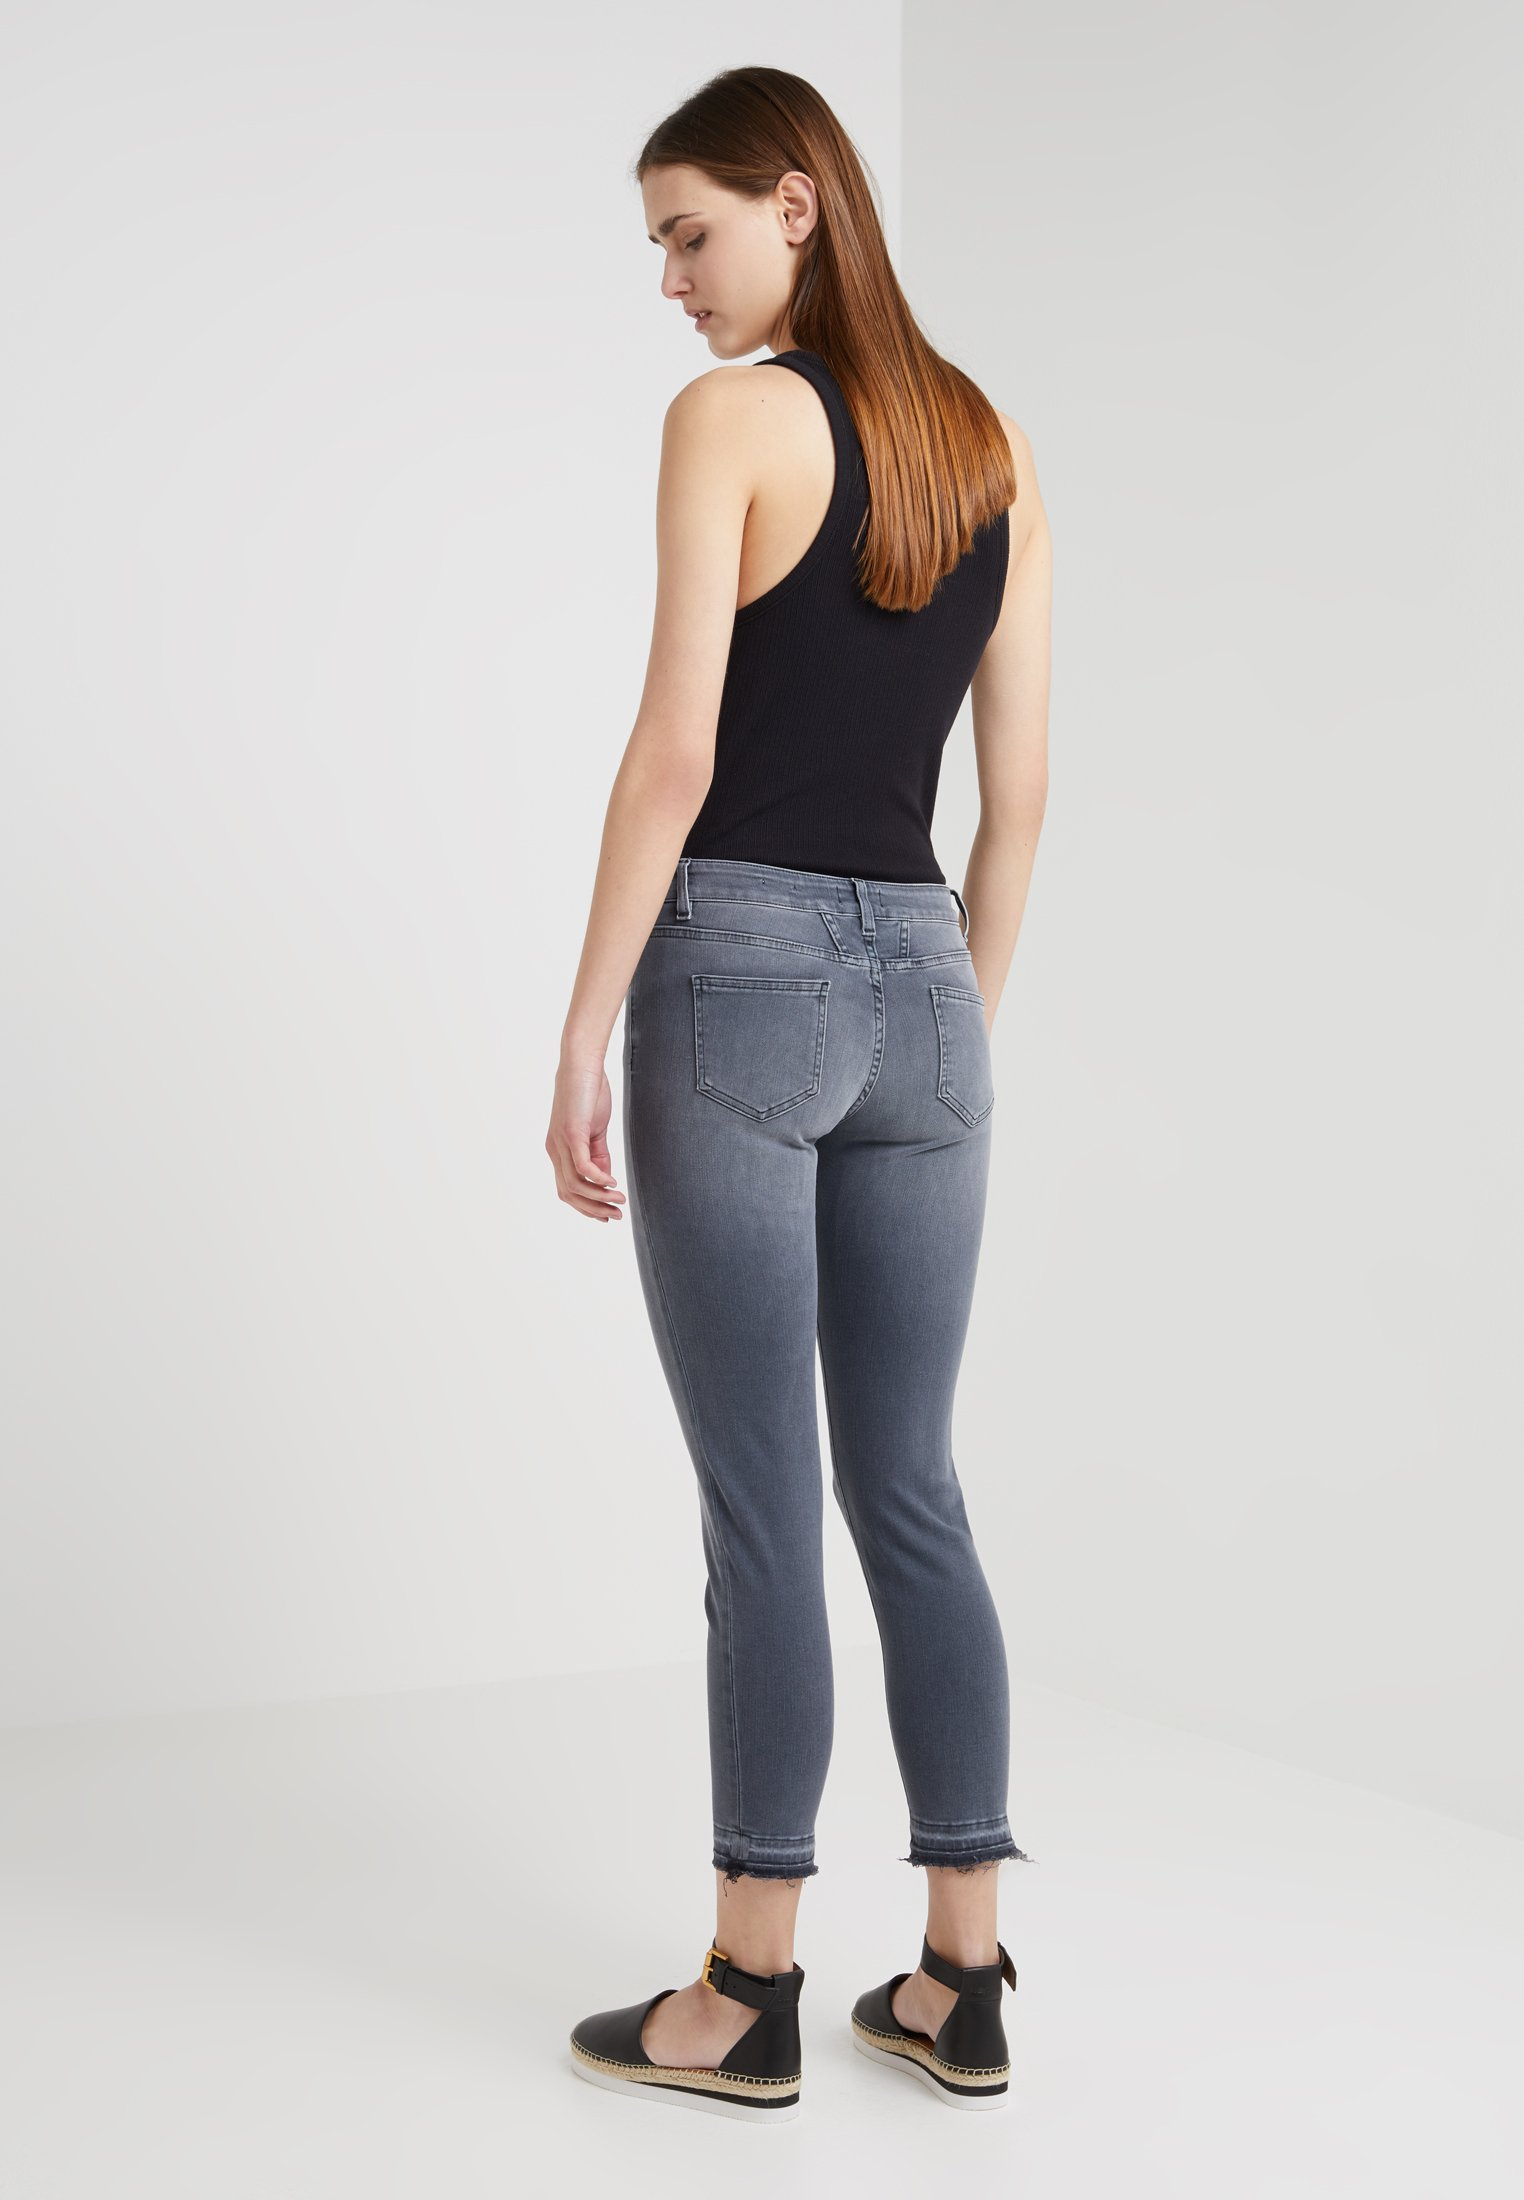 Closed BakerJean Grey Mid BakerJean Closed Slim Slim Mid Closed Grey 0v8mNwnO